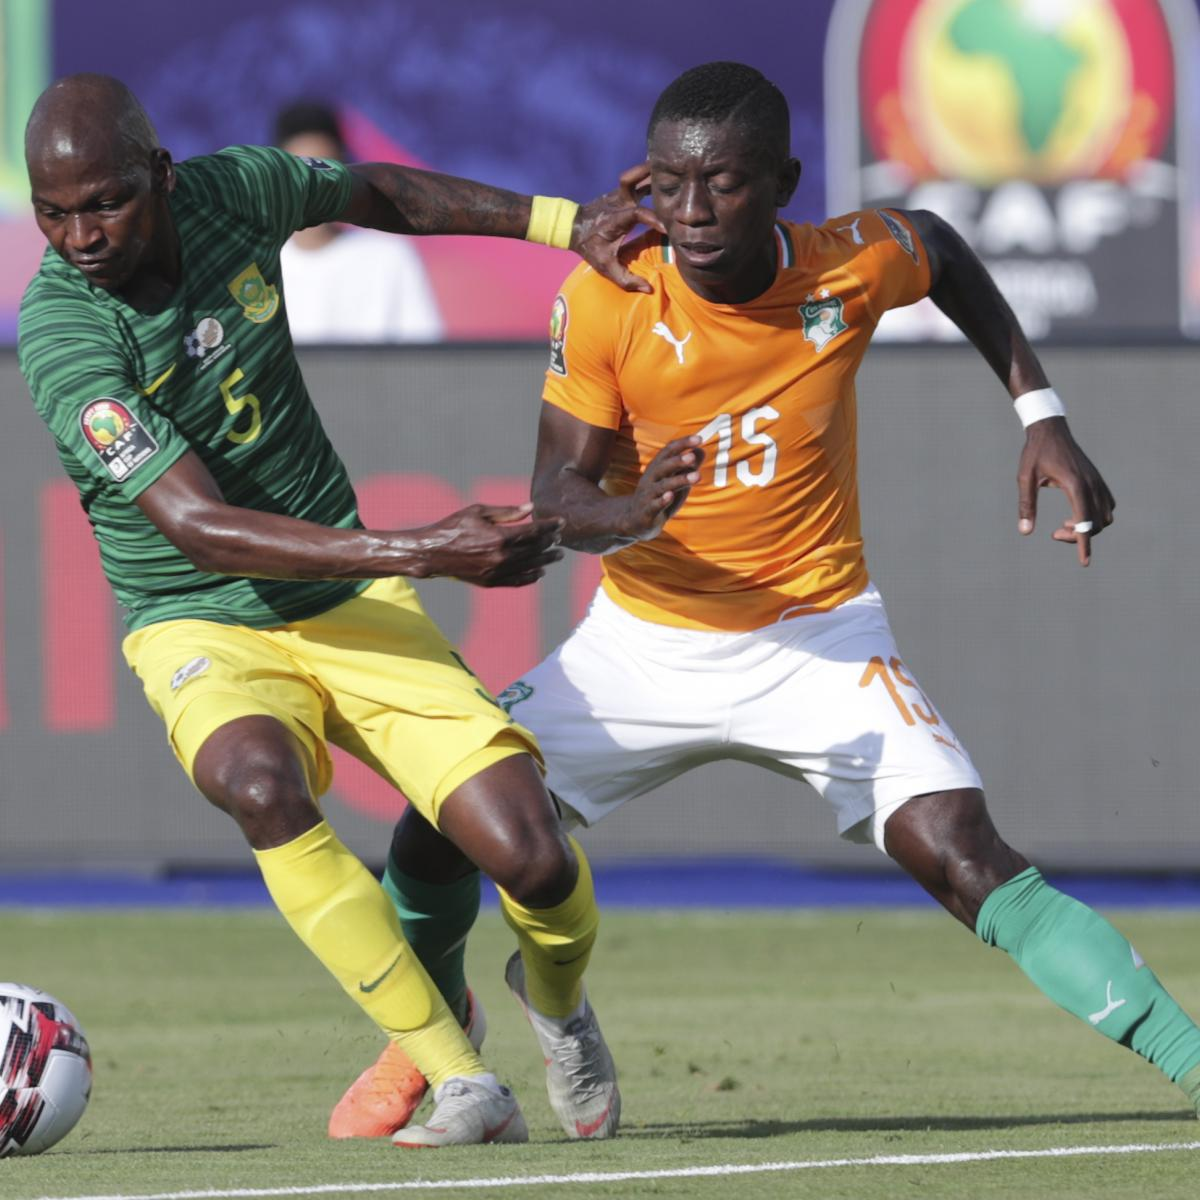 AFCON 2019: Monday Scores, Results, Standings and Updated Schedule